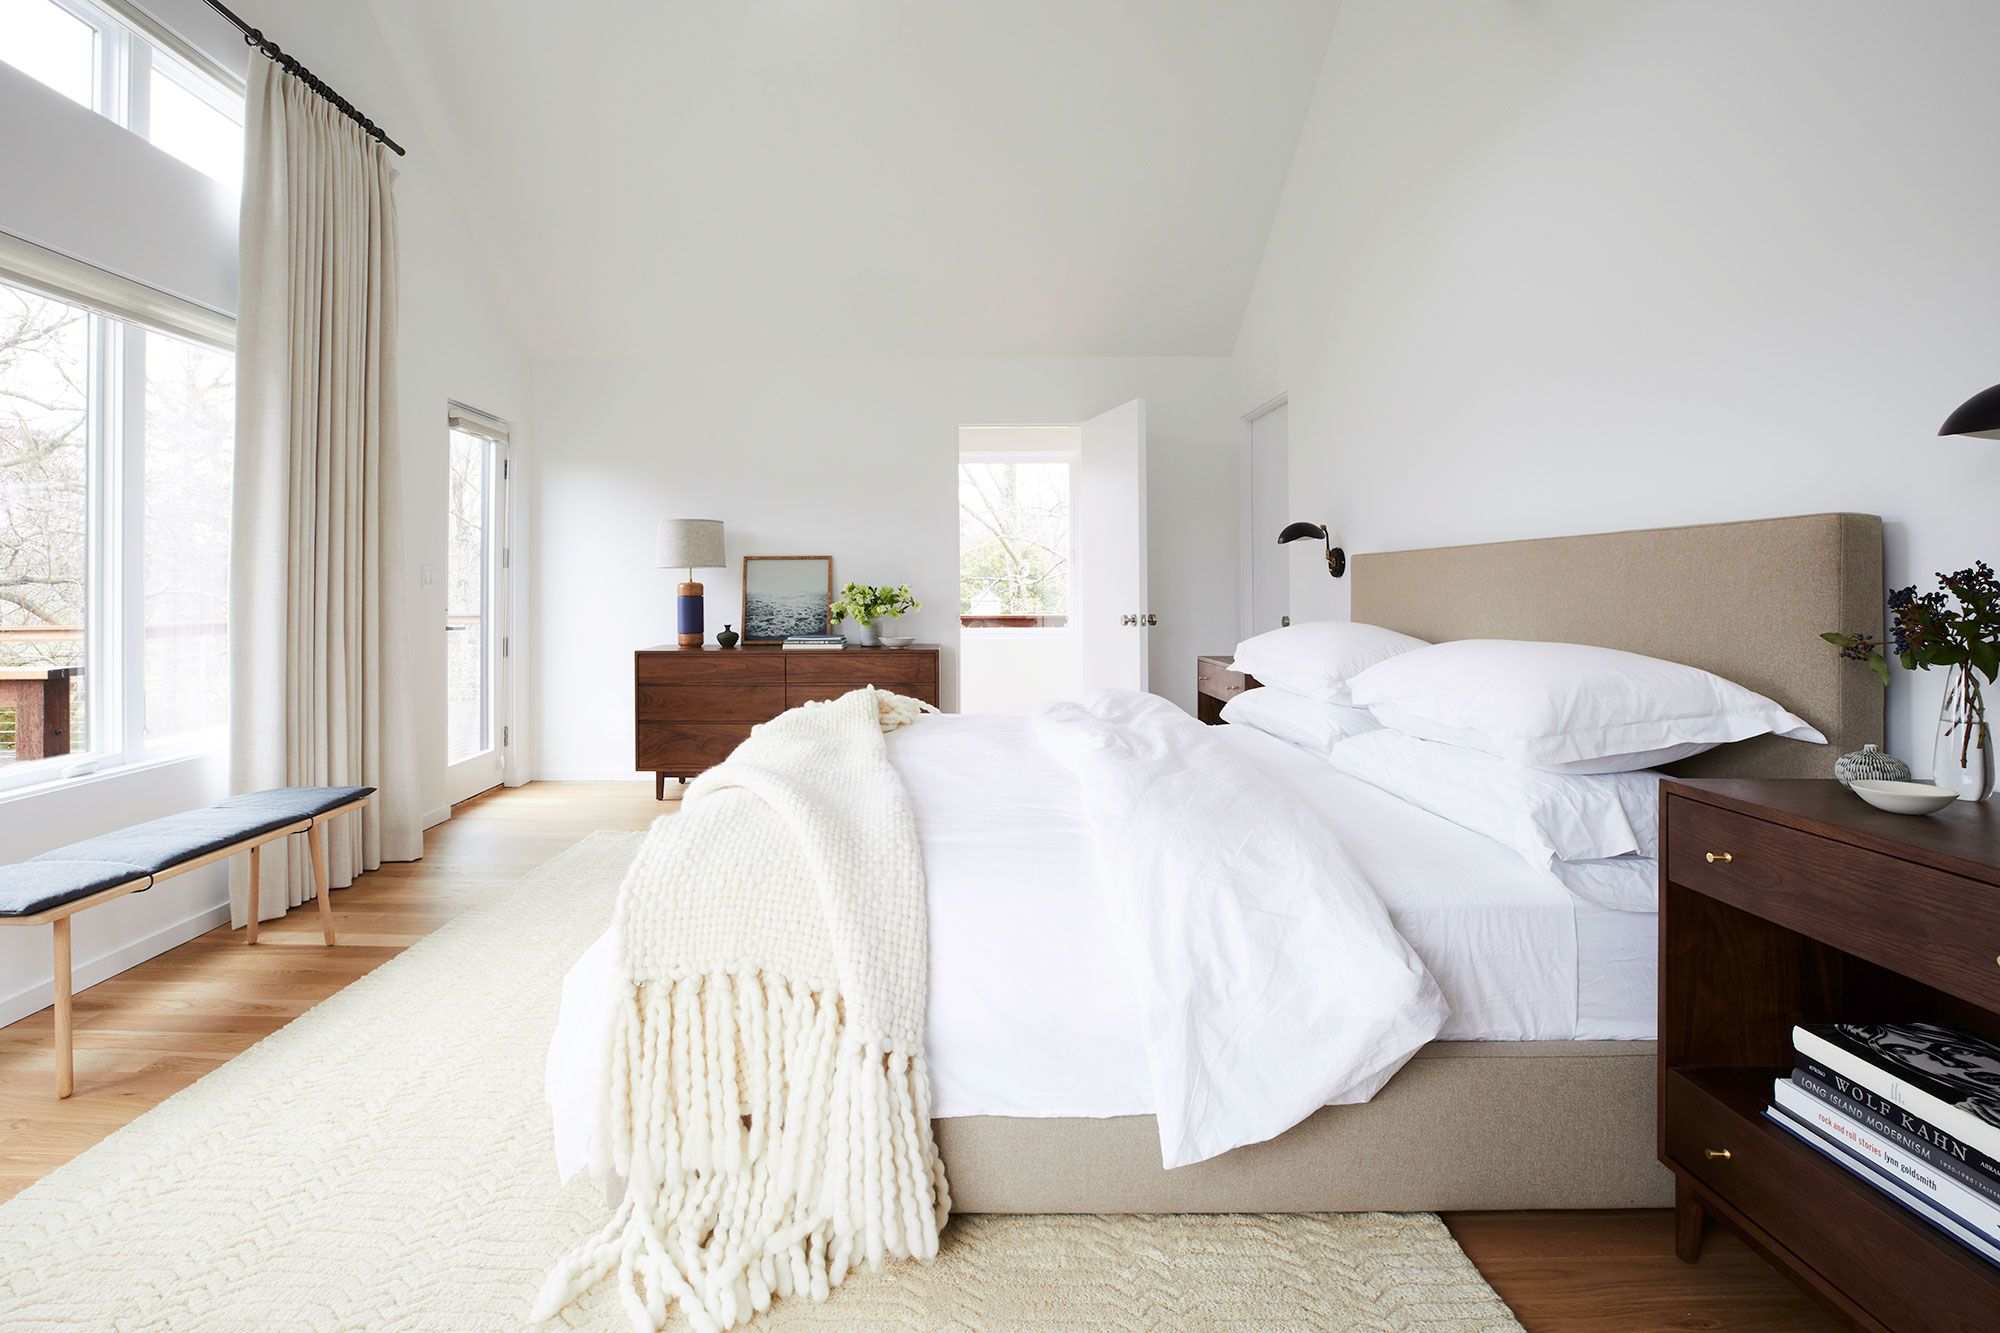 Modern Bedroom Layout 20 Cozy Bedroom Ideas How To Make Your Bedroom Feel Cozy